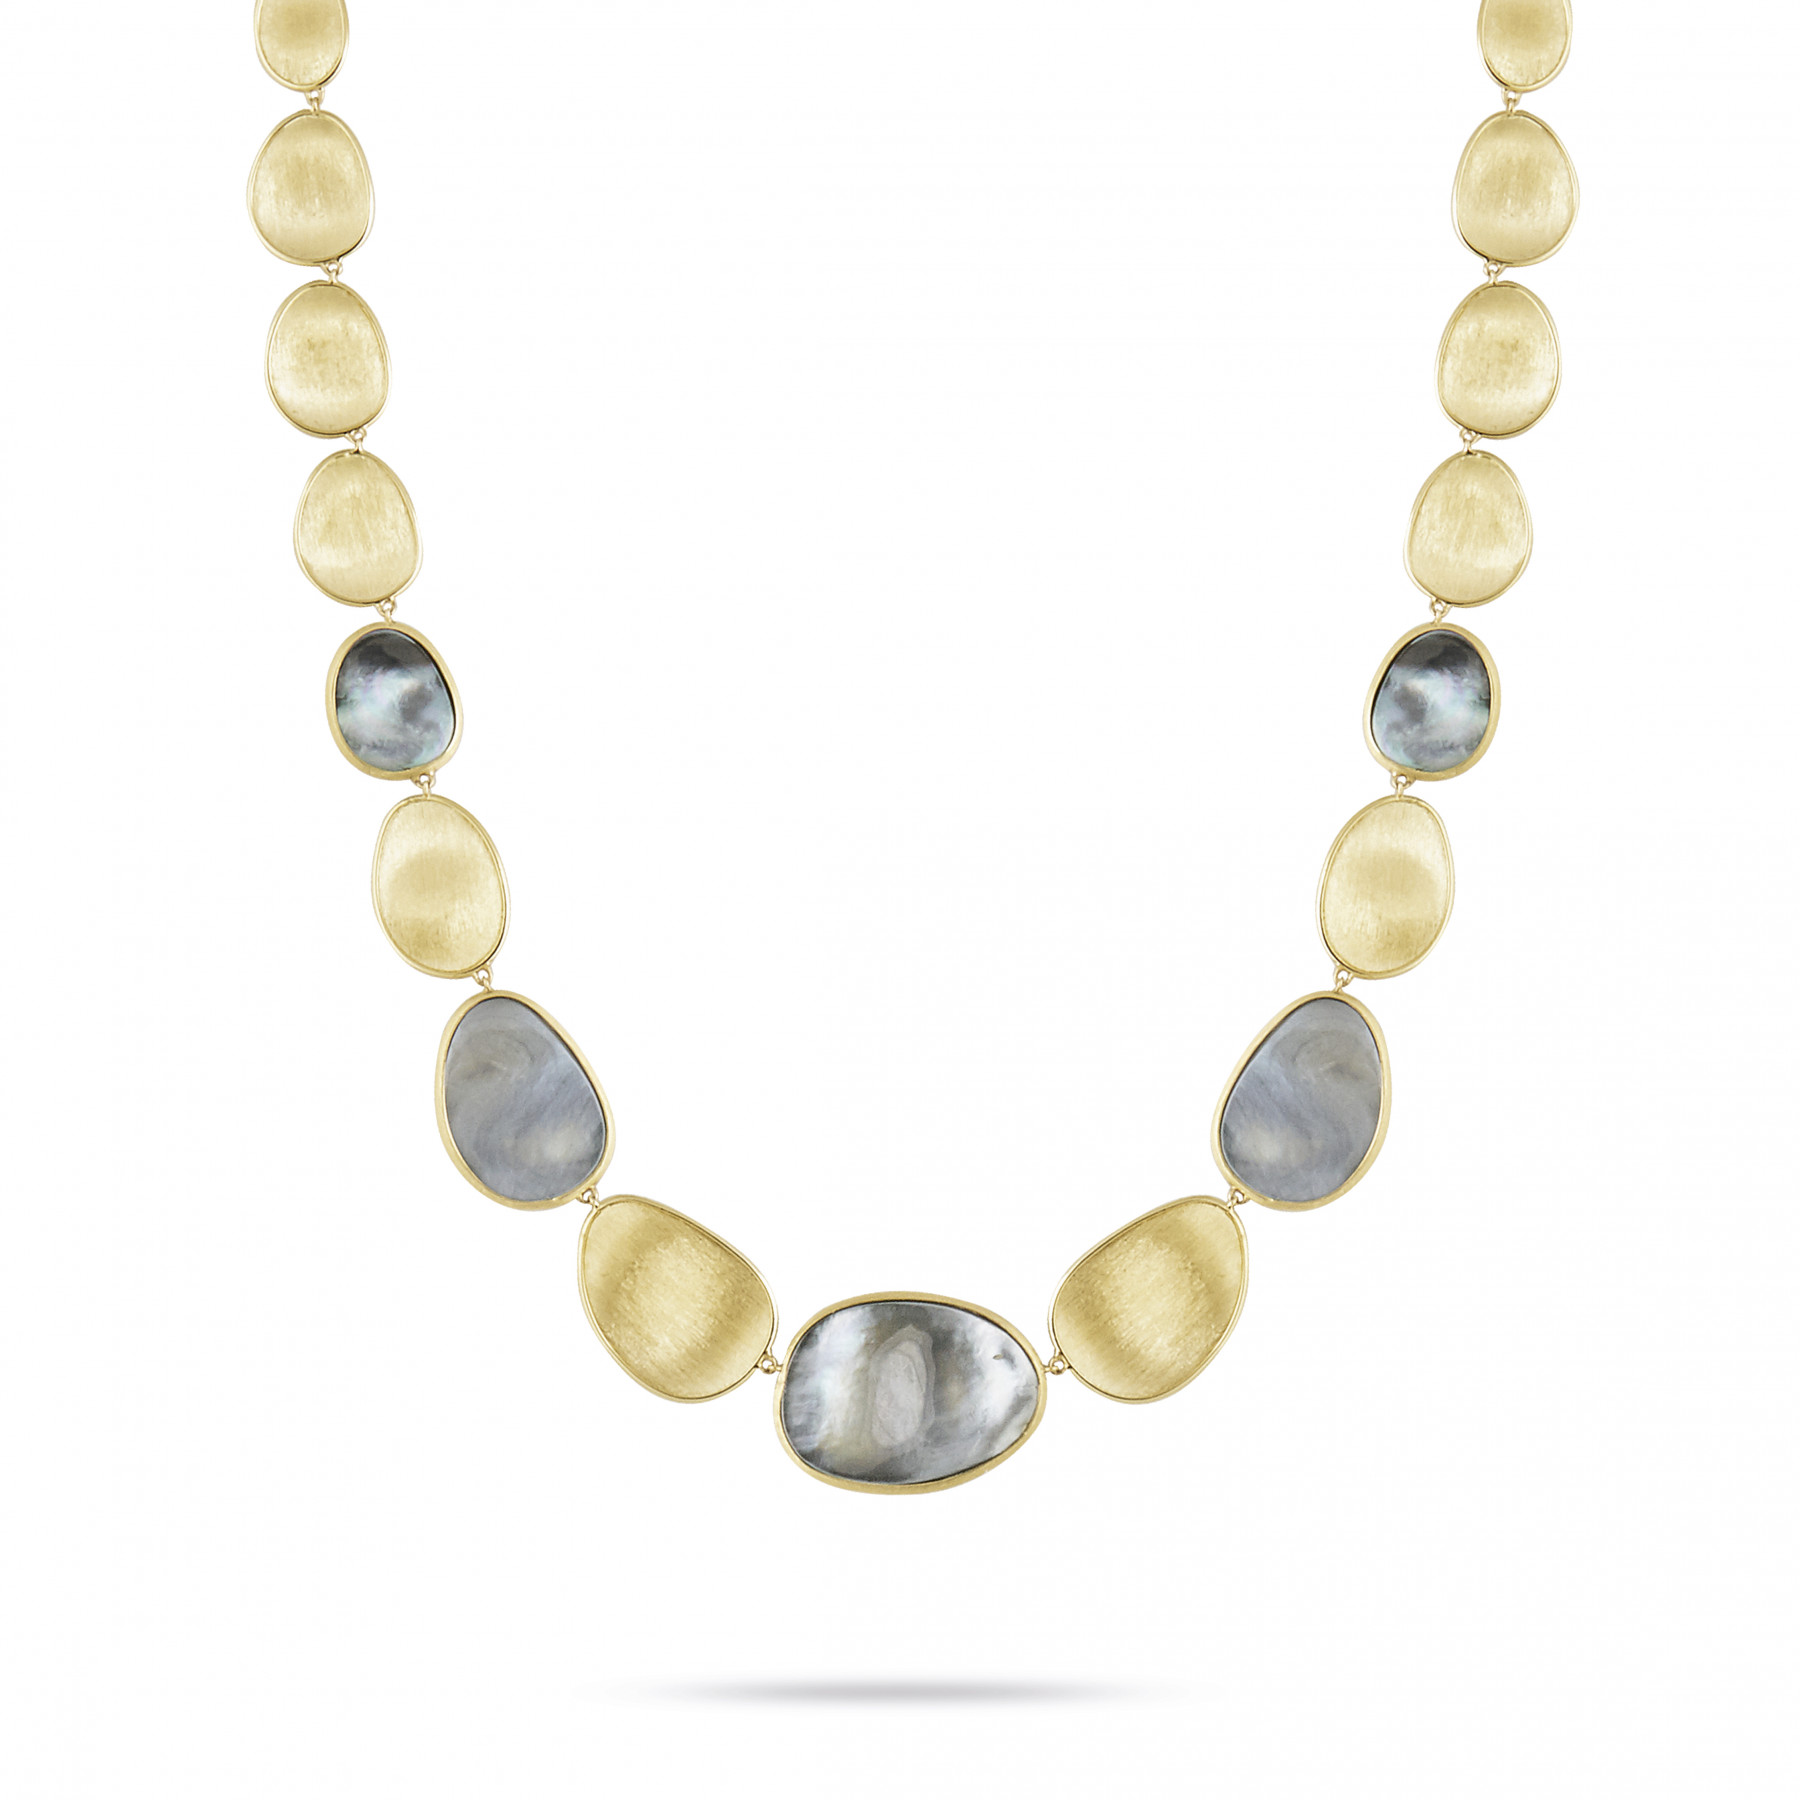 Marco Bicego Black Mother of Pearl Lunaria Necklace